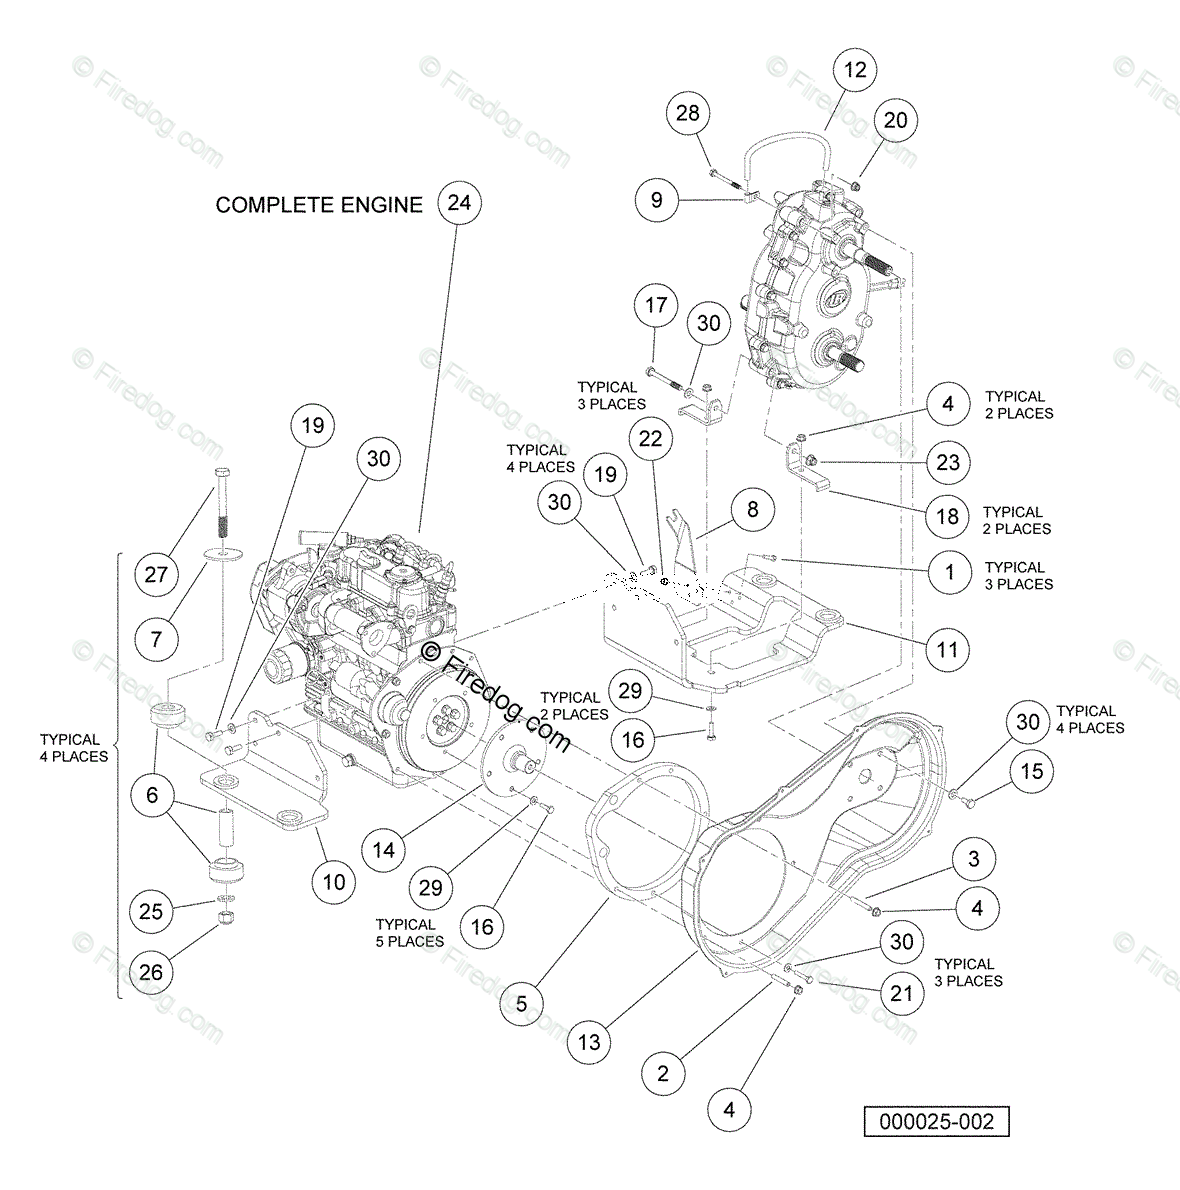 Parts Manual For Kubota D722